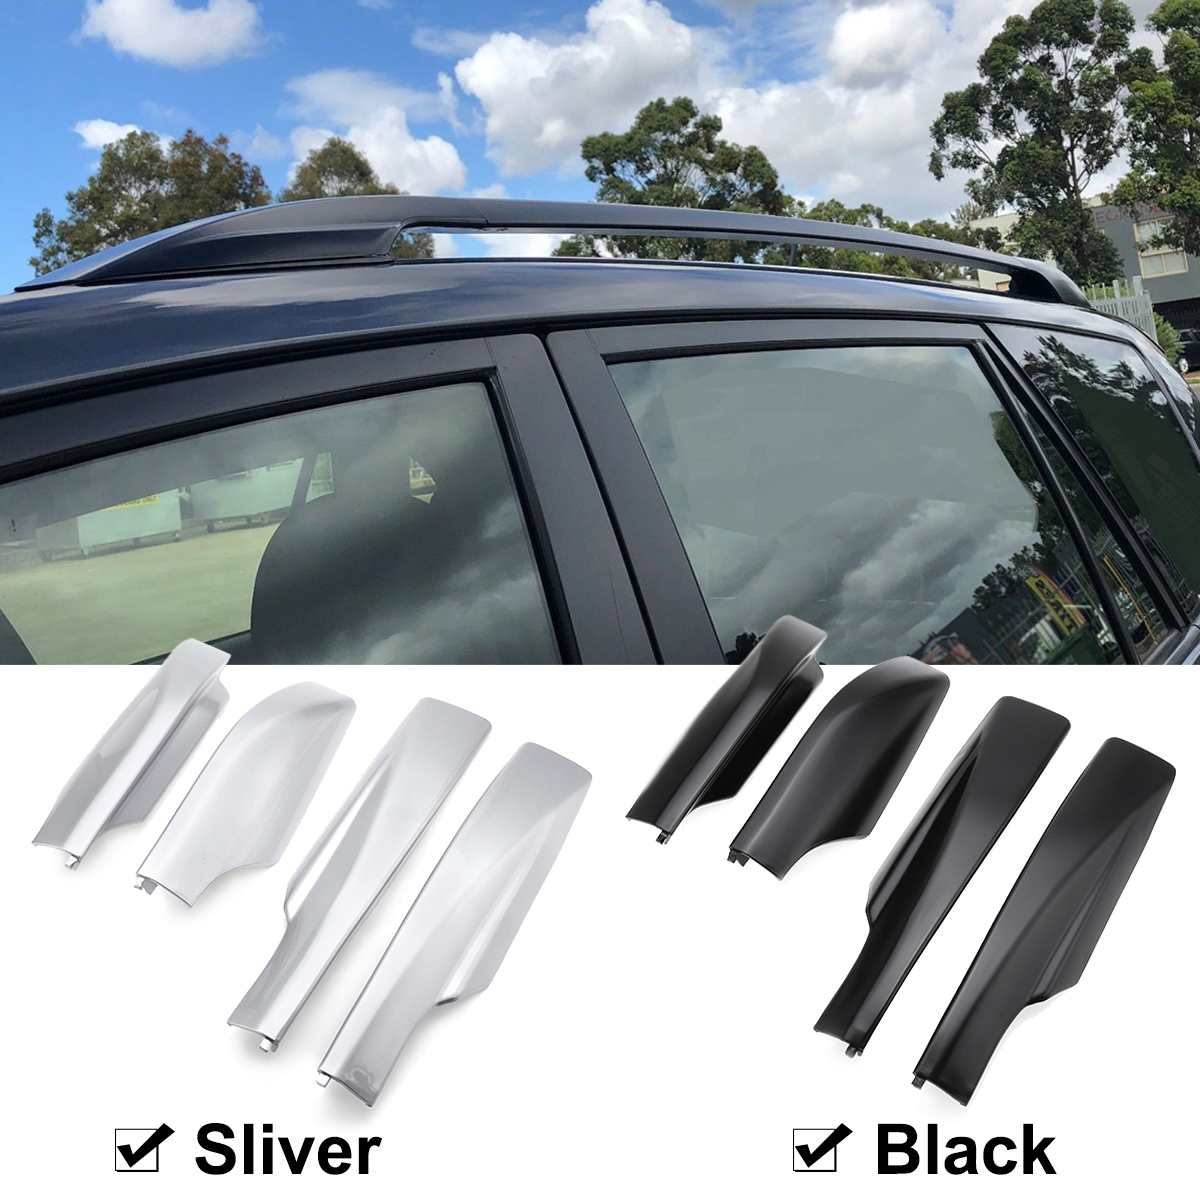 4Pcs Black Silver ABS Roof Rack Cover Rail End Protective Cover Shell For TOYOTA RAV4 2007 2008 2009 2010 2011 2012 image